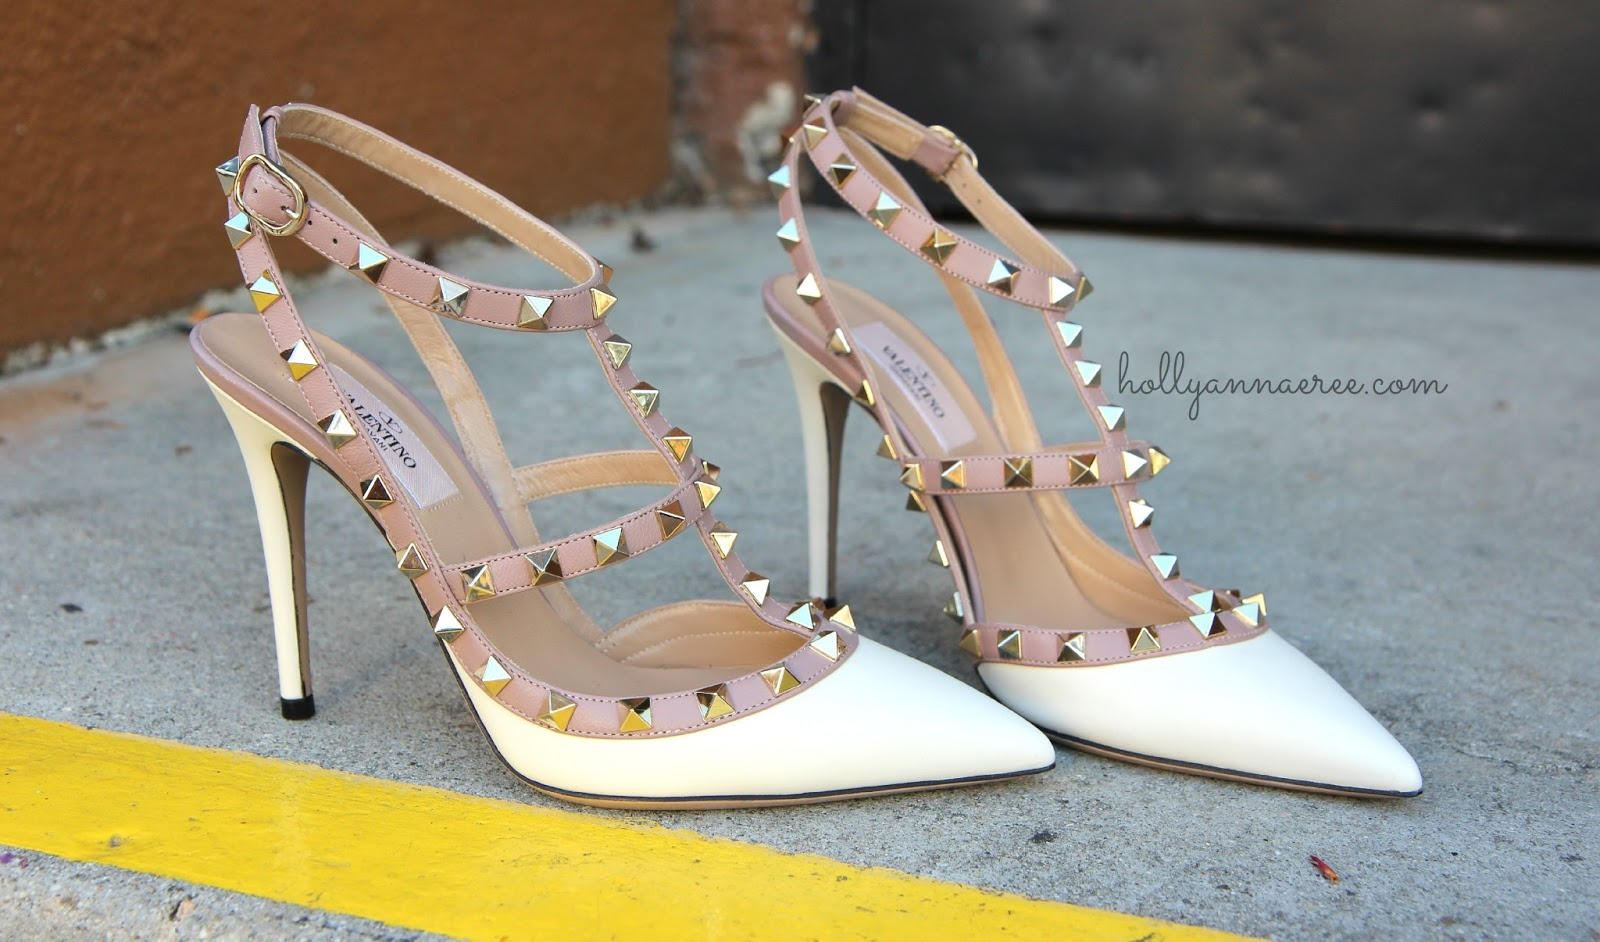 44ac196820 [Fashion] Sneak Peek: Upcoming Shoe Reviews - Valentino Rockstud T-Strap;  Jeffrey Campbell Soiree